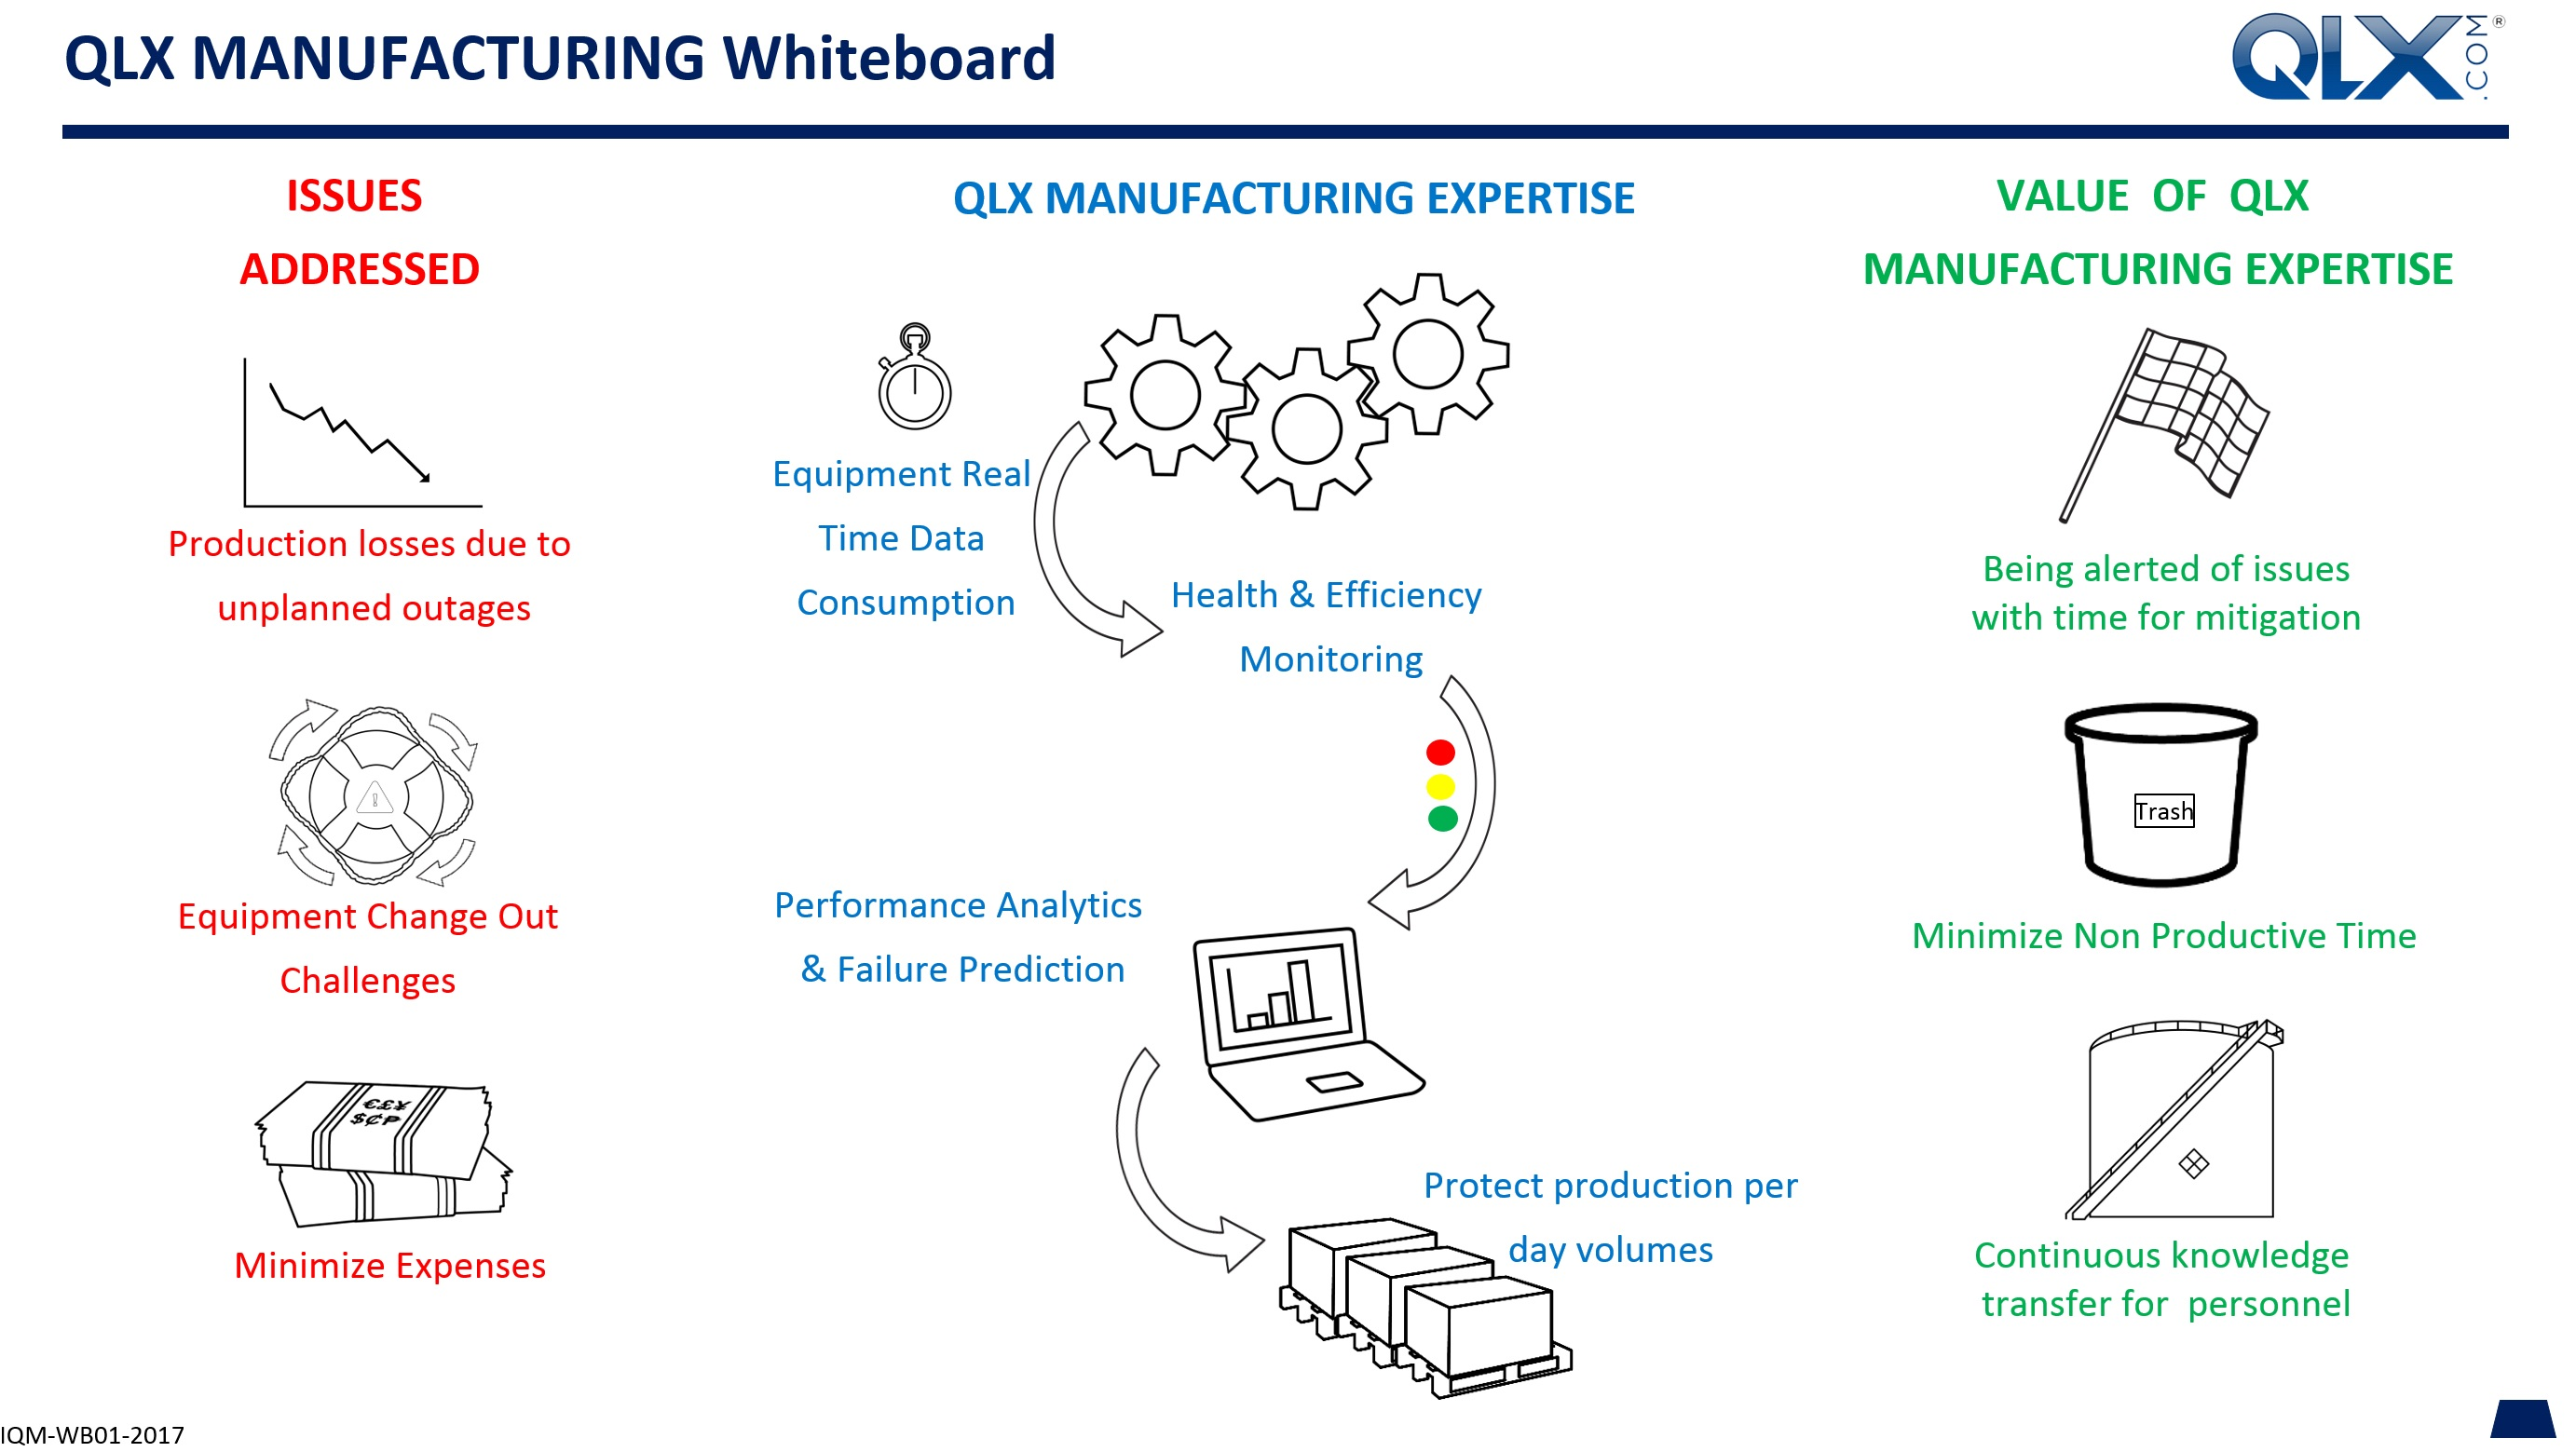 QLX Whiteboard Manufacturing